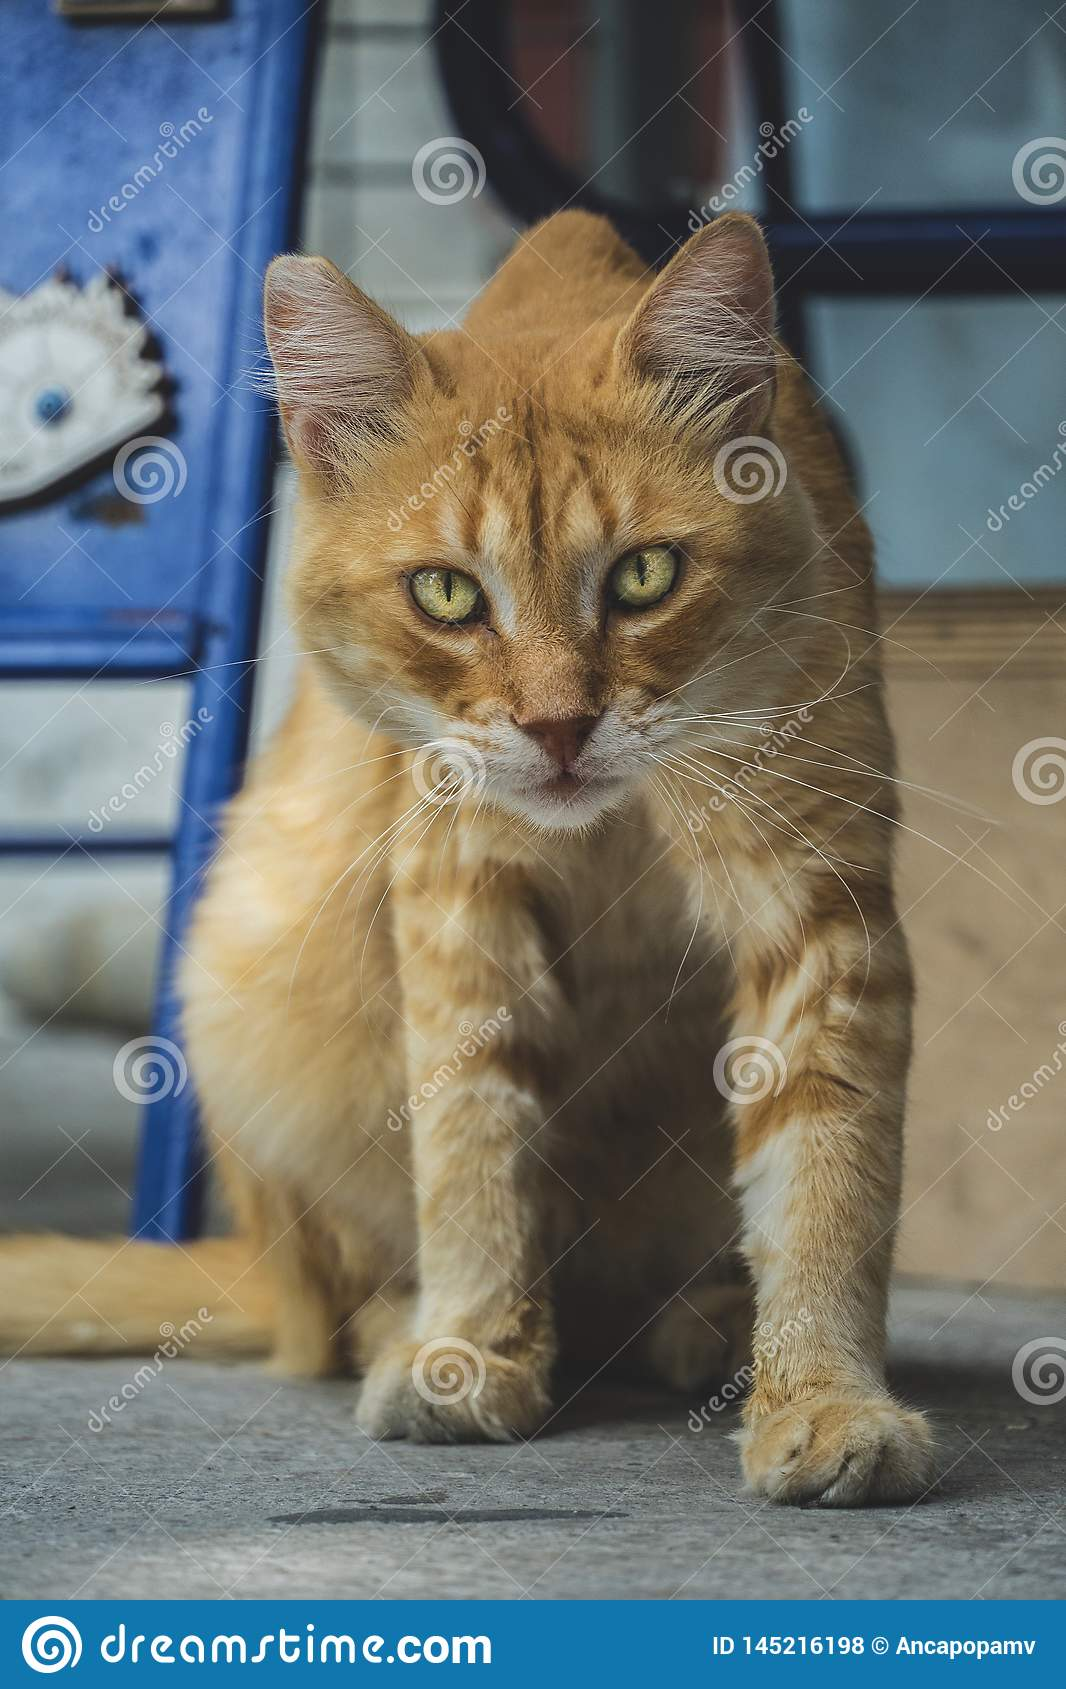 Adult stray orange tabby cat with golden eyes, looking curious at the camera